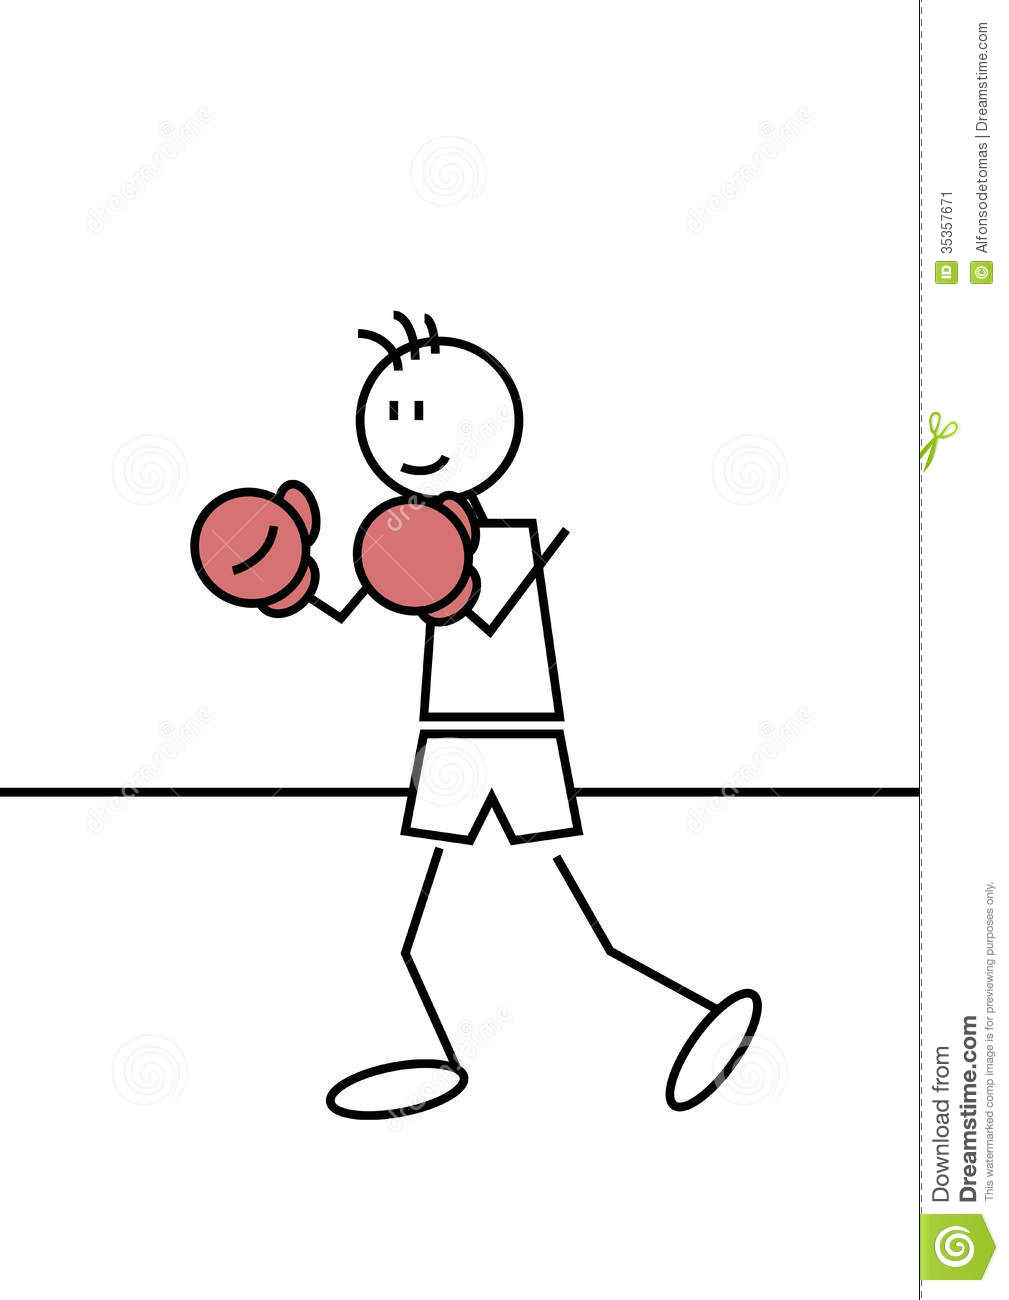 Stick figure of a boy boxing. Sports and leisure concept.